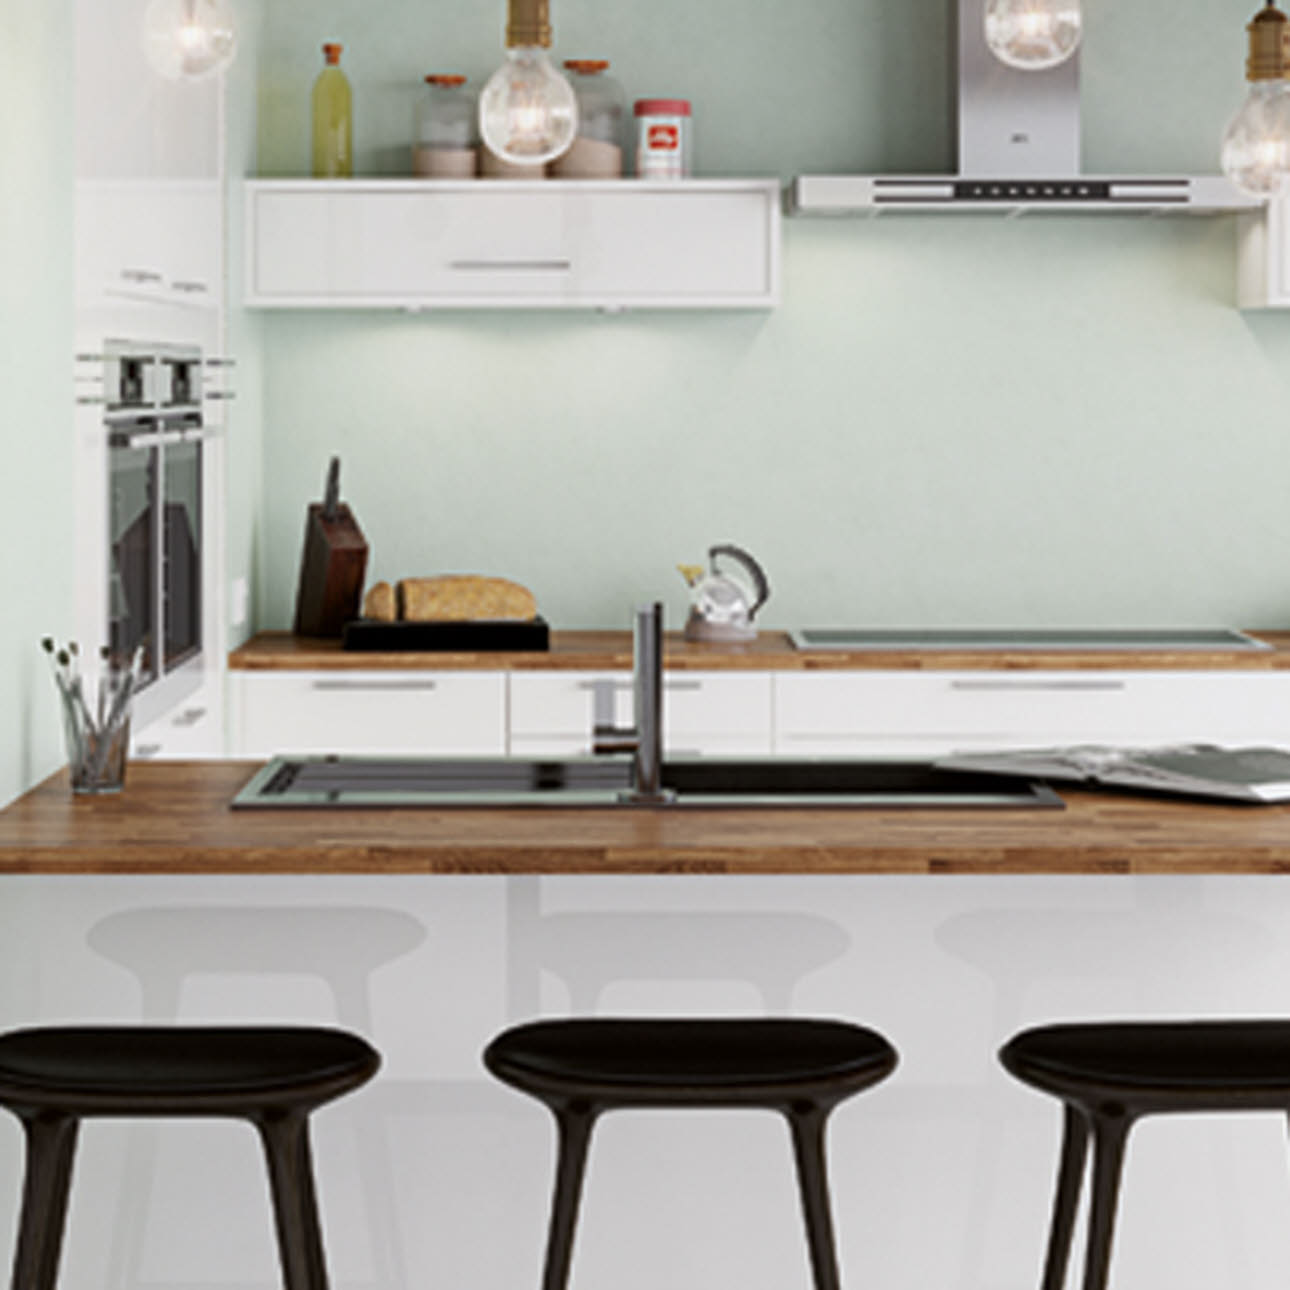 Cream kitchen island with wooden worktop and three black stools